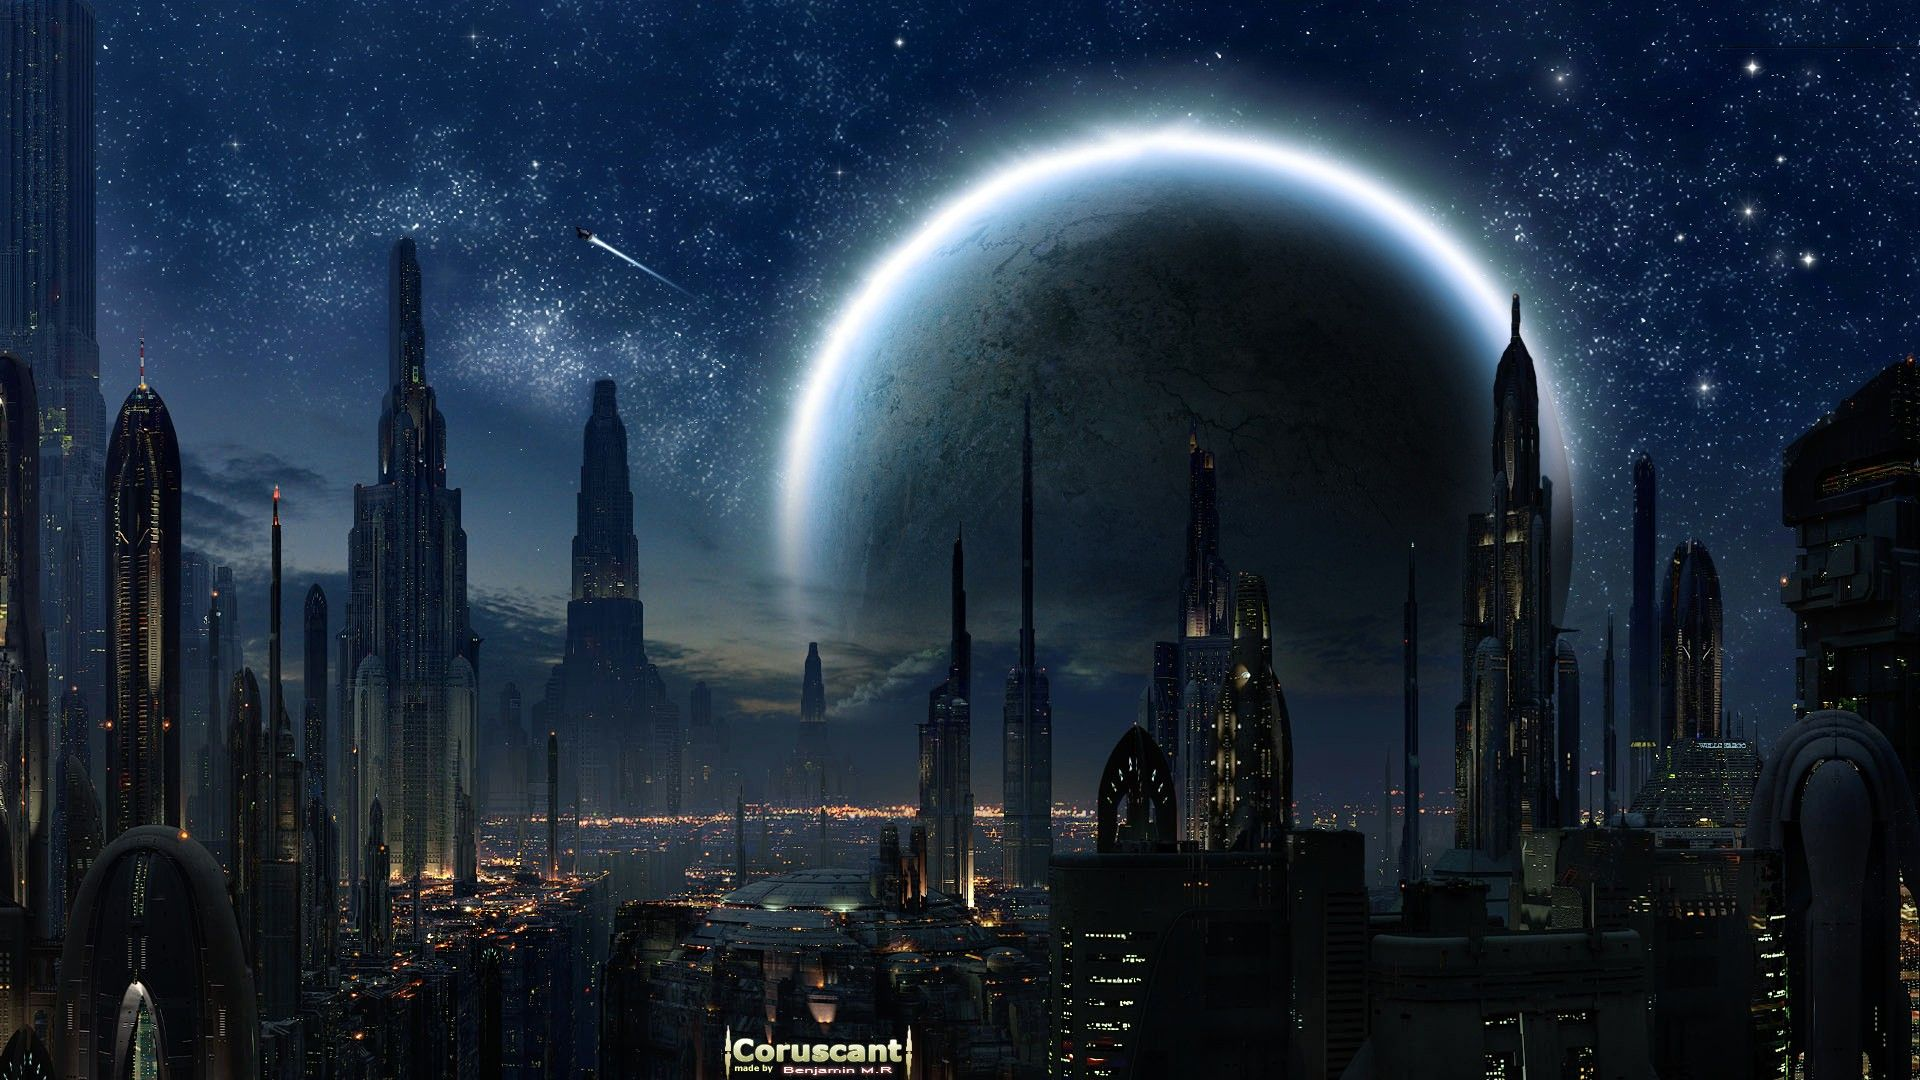 Coruscant 3d architecture cityscape moon cgVintage from